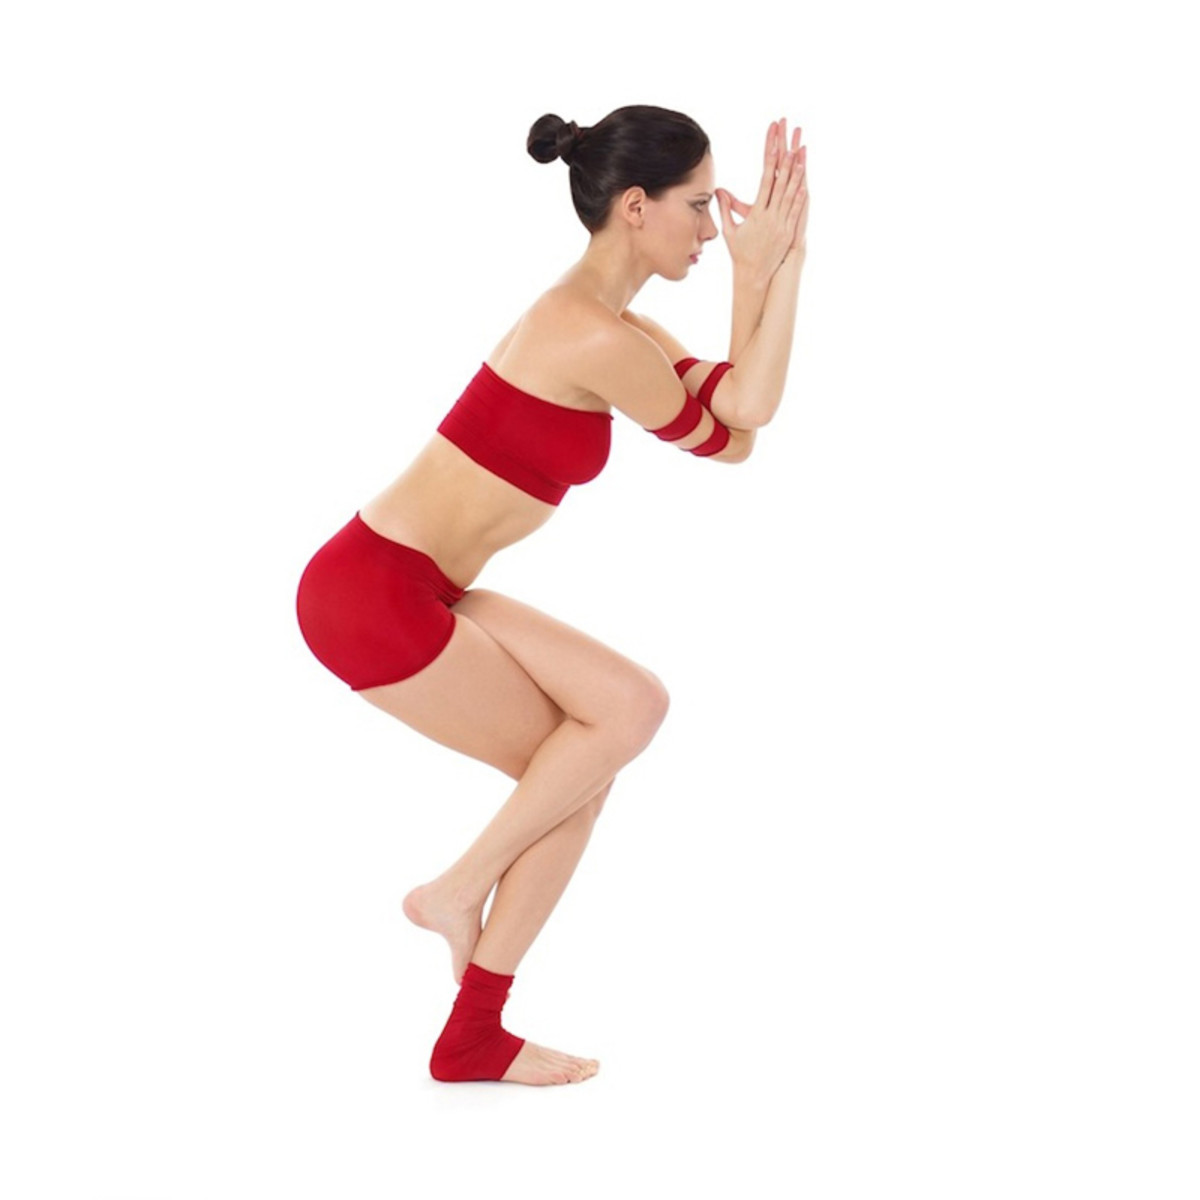 Eagle yoga pose or Garudasana is beneficial for the shoulders, upper arms and legs.